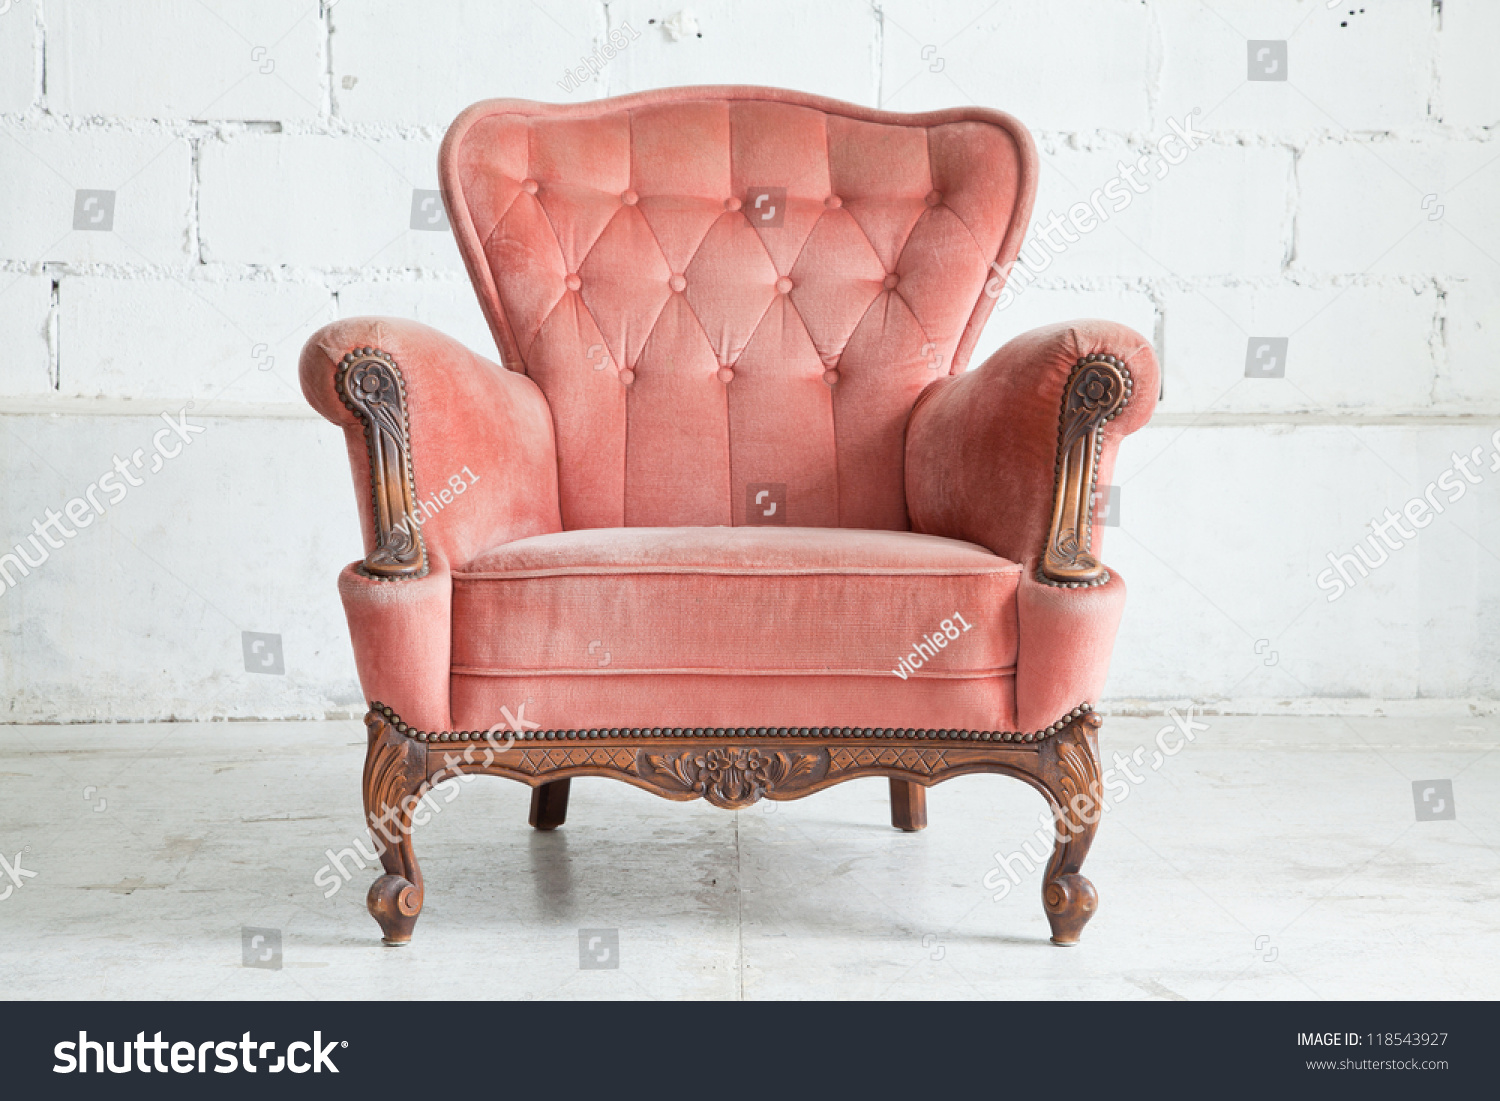 Pink Classical Style Armchair Sofa Couch In Vintage Room Stock Photo 118543927 Shutterstock